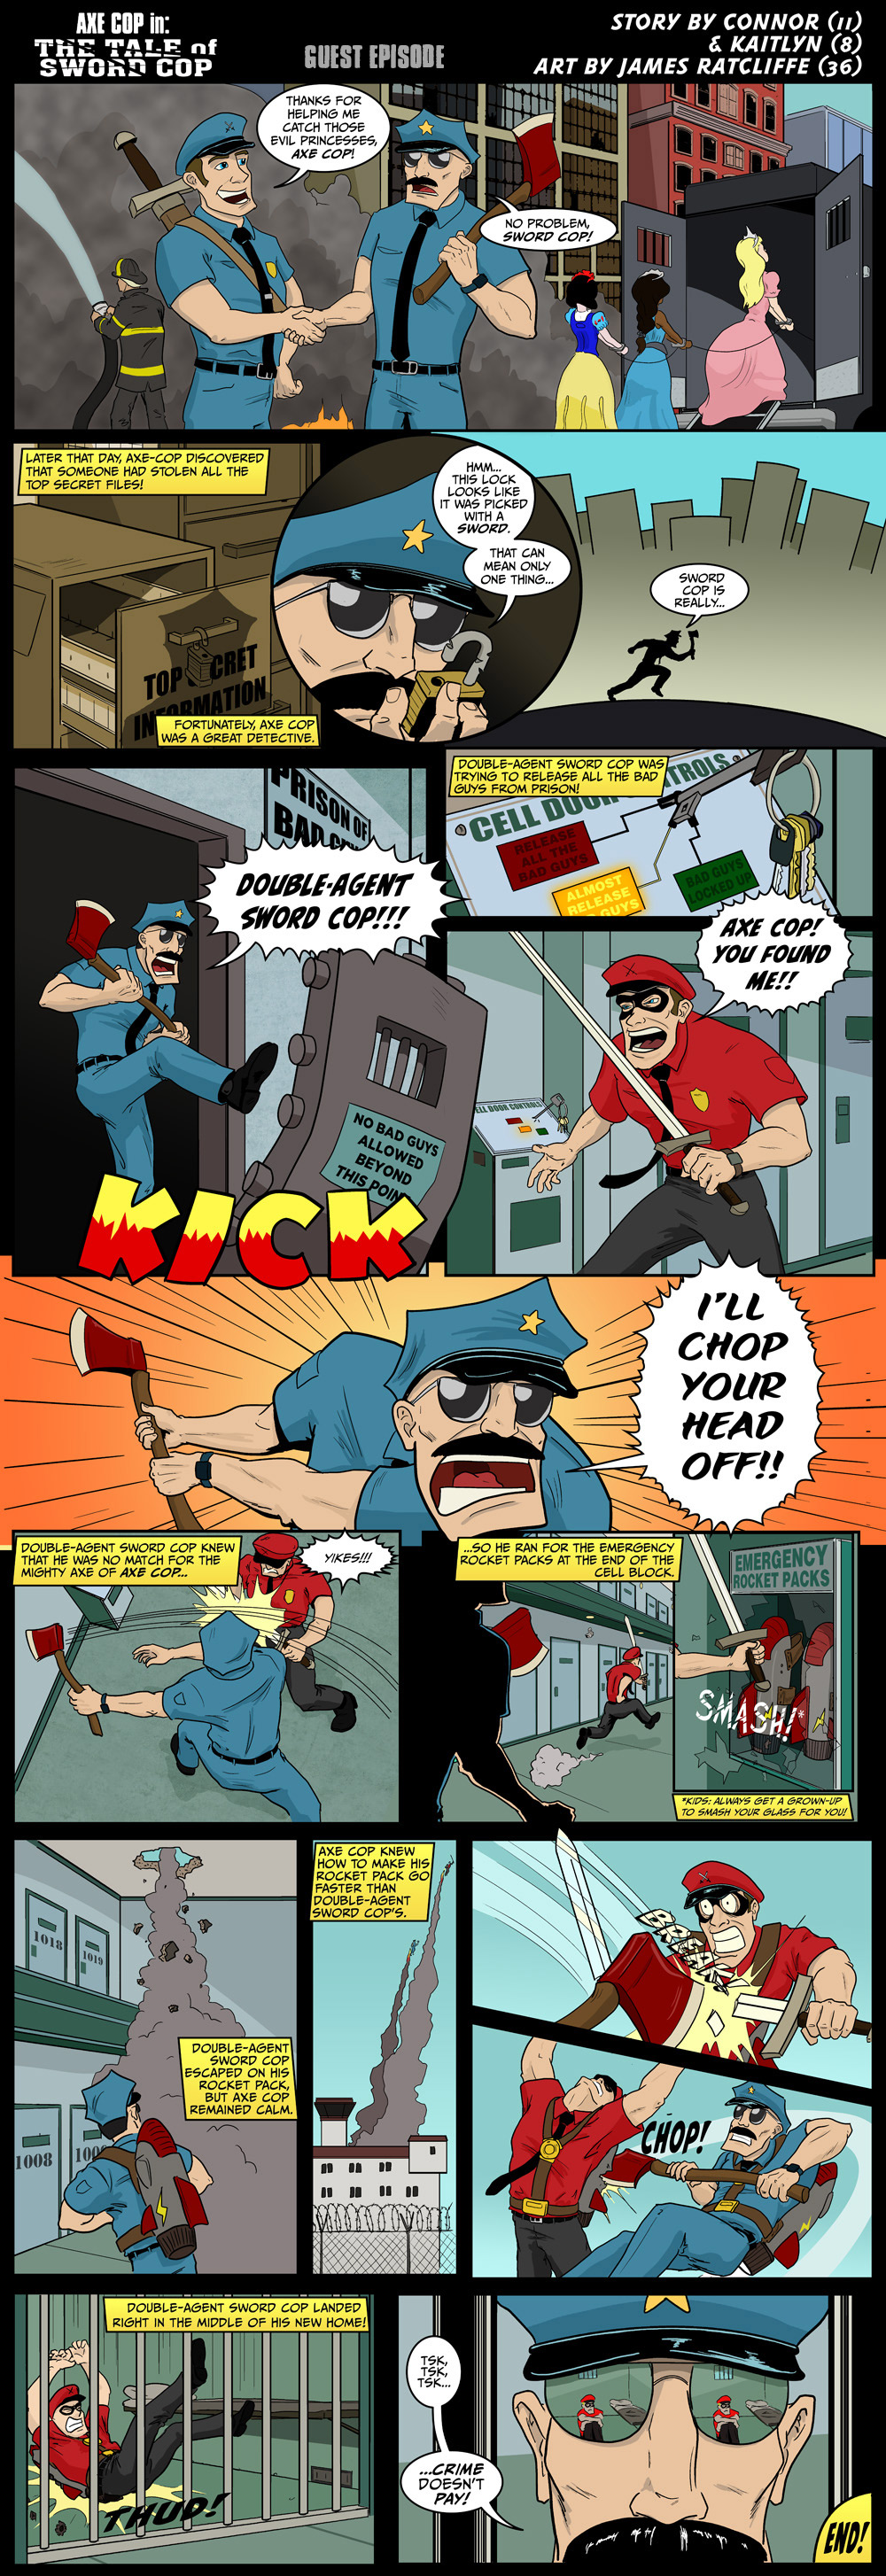 Axe Cop Guest Episode #41